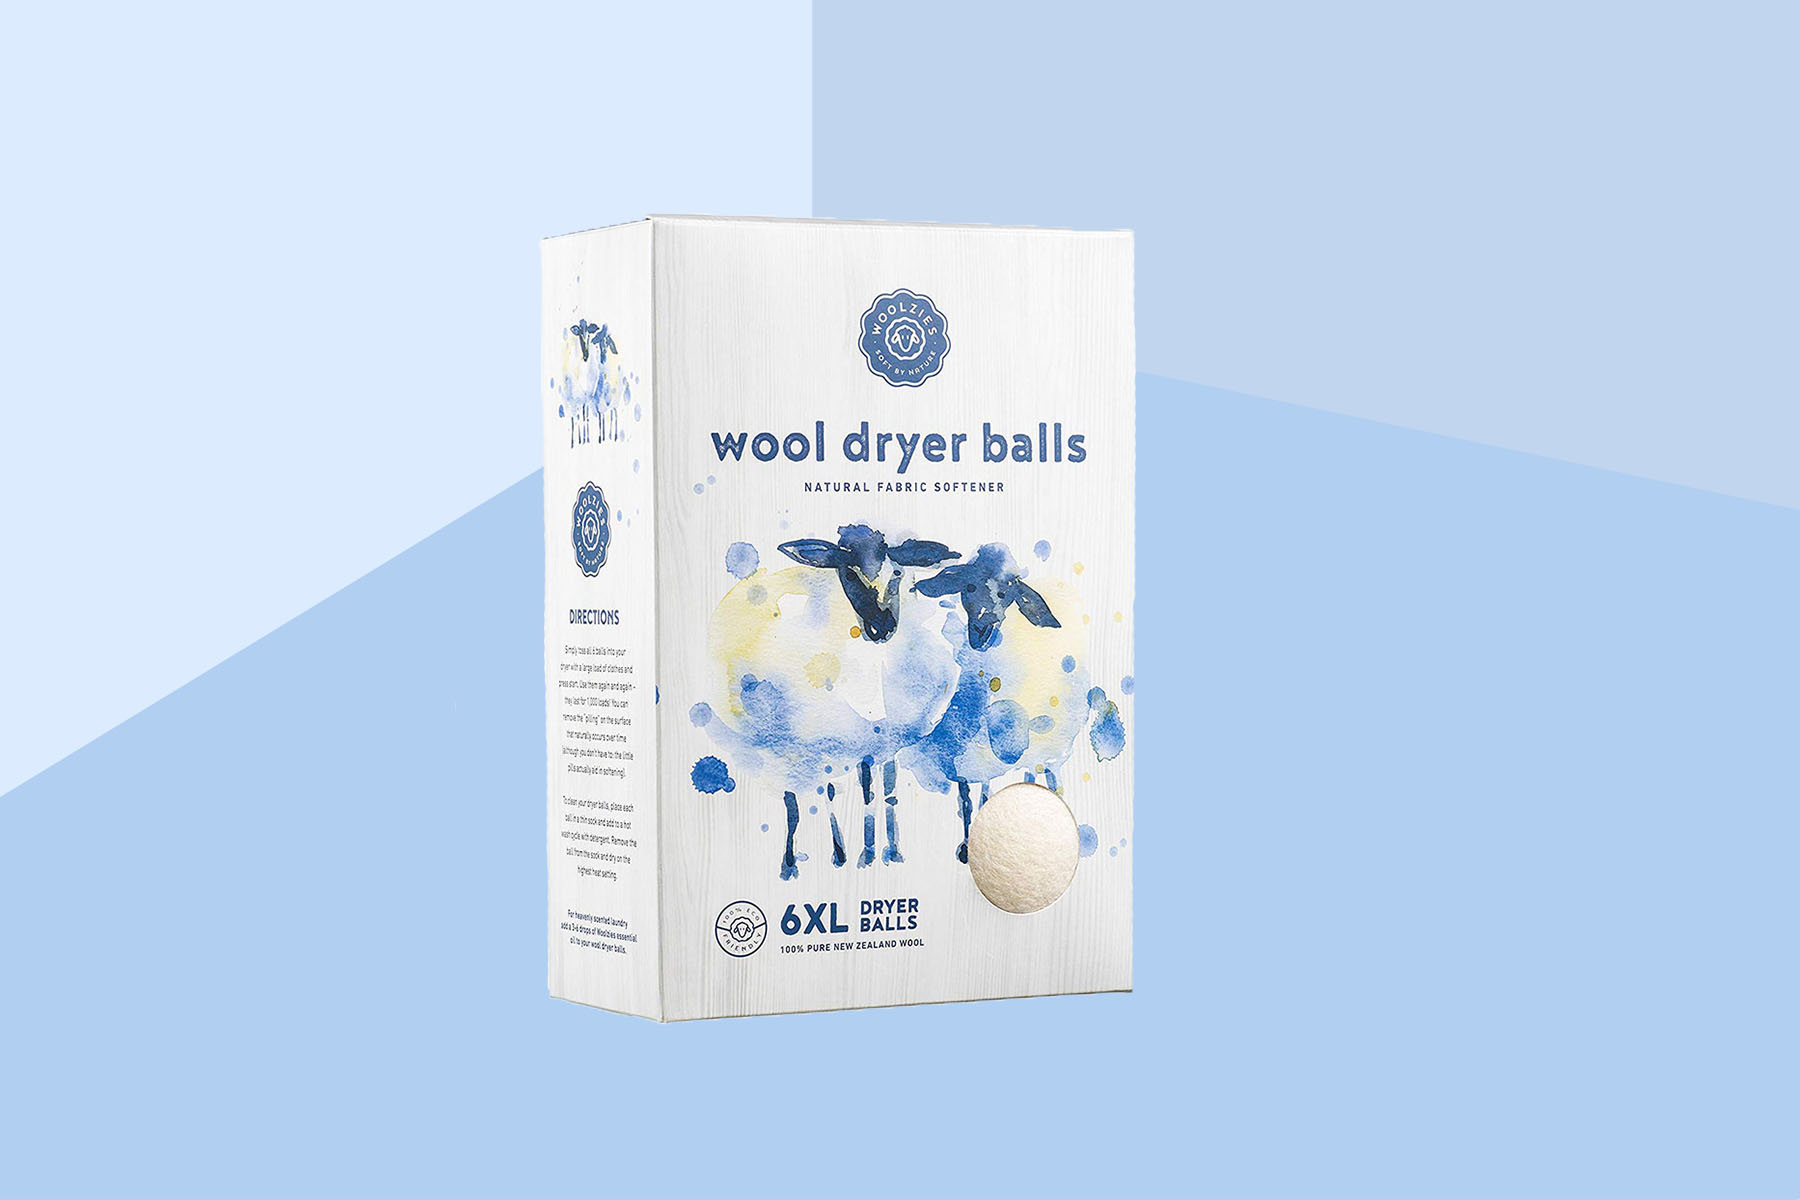 Is It Better to Use Dryer Balls or Dryer Sheets? Here's Everything You Need to Know